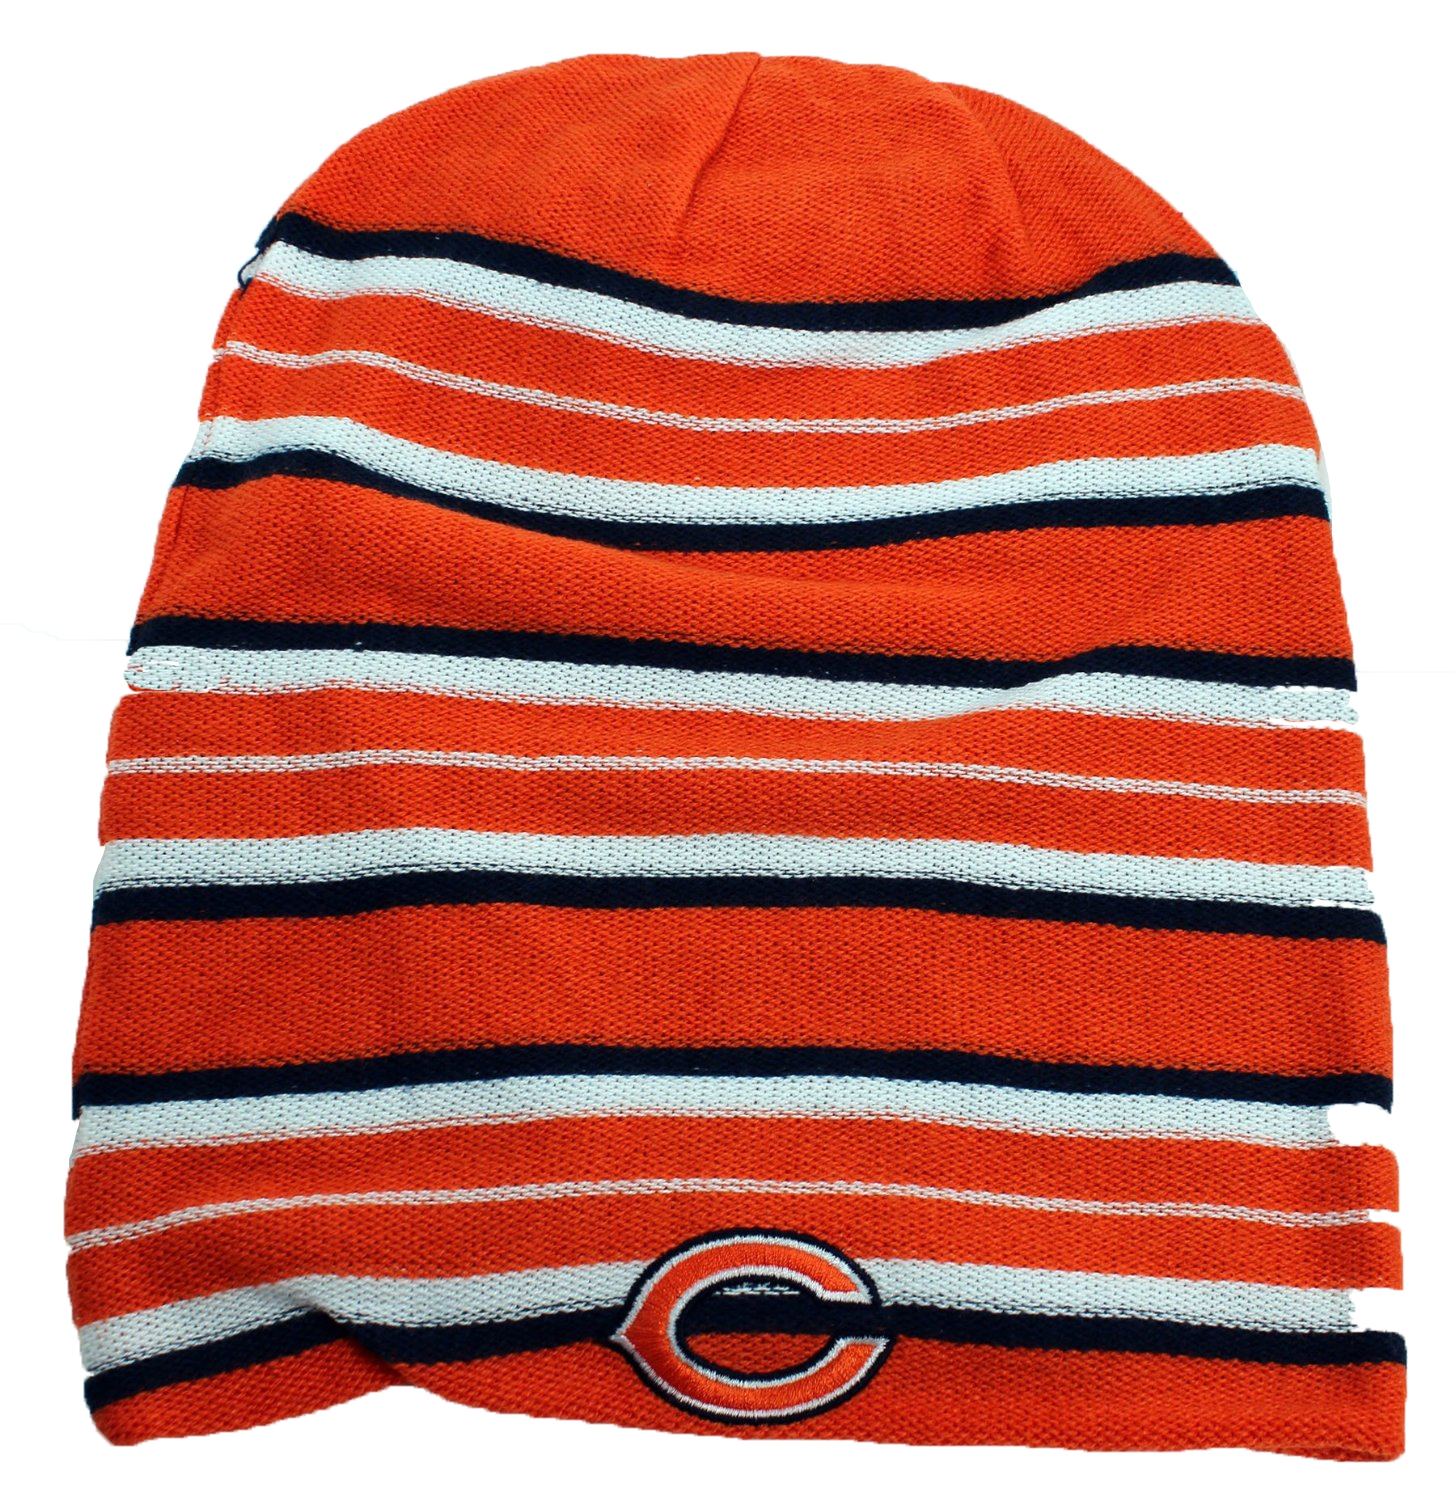 Reebok NFL Chicago Bears Knit Beanie Hat Orange